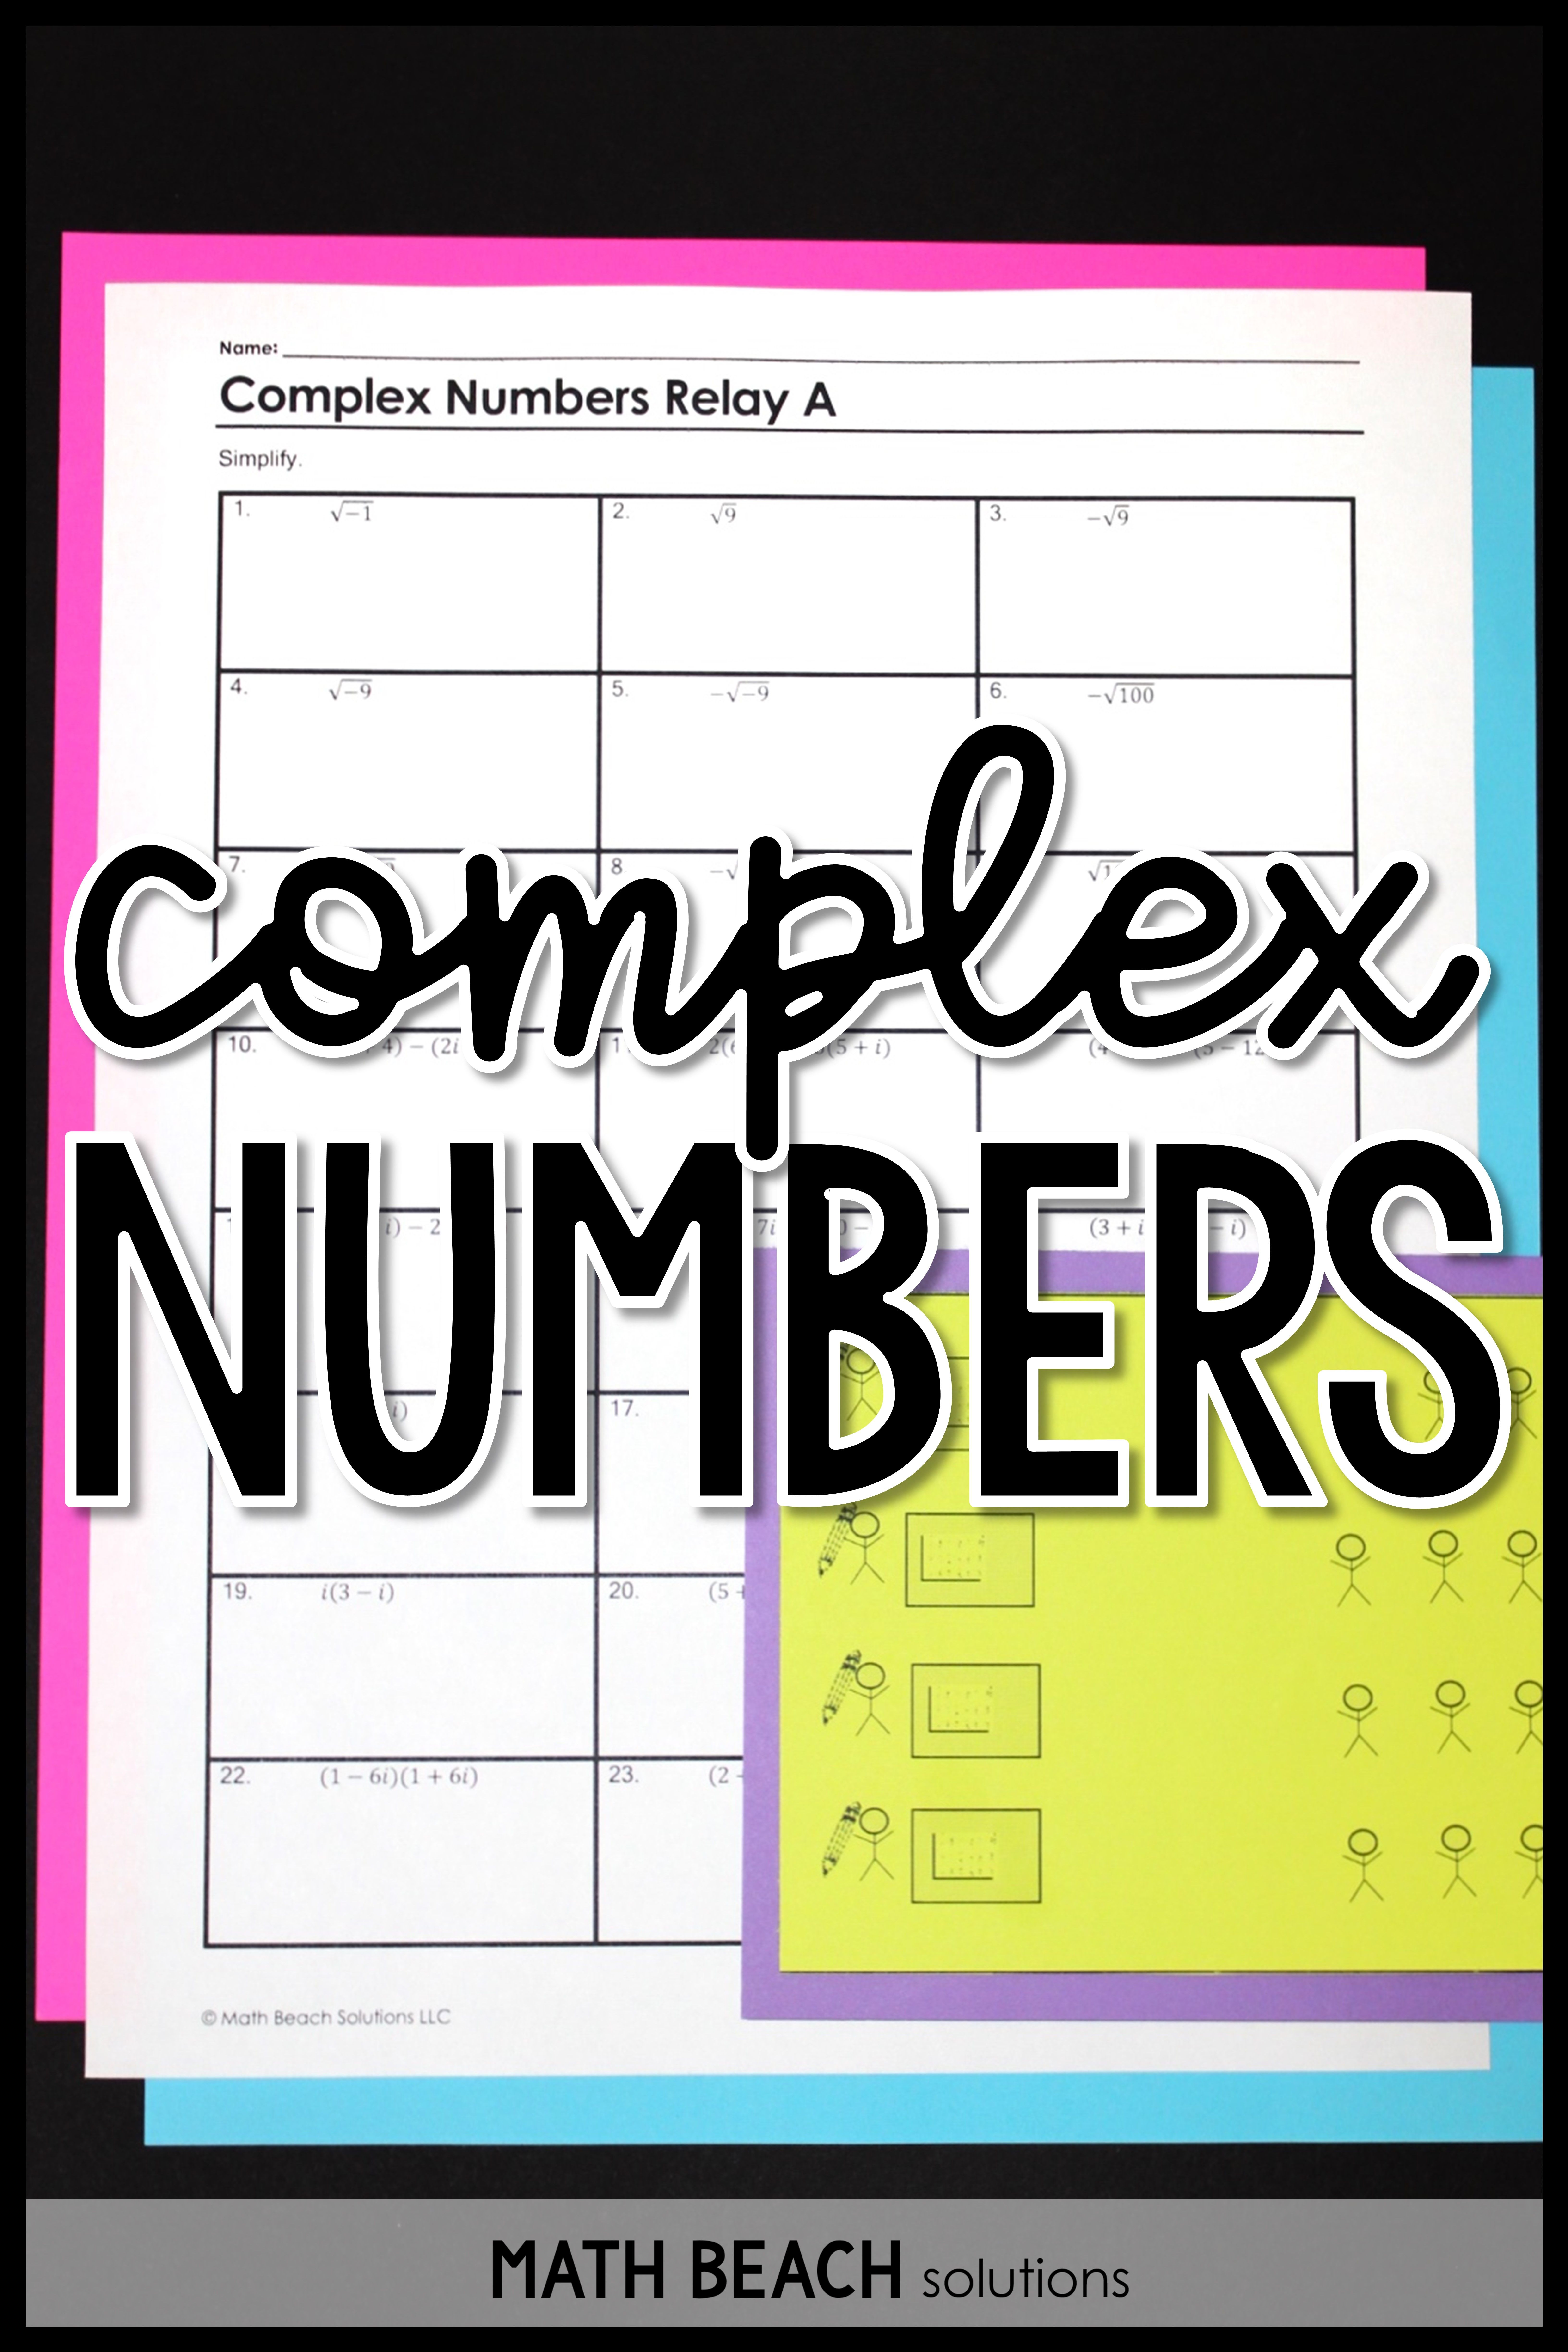 Simplifying Complex Rational Expressions Worksheet